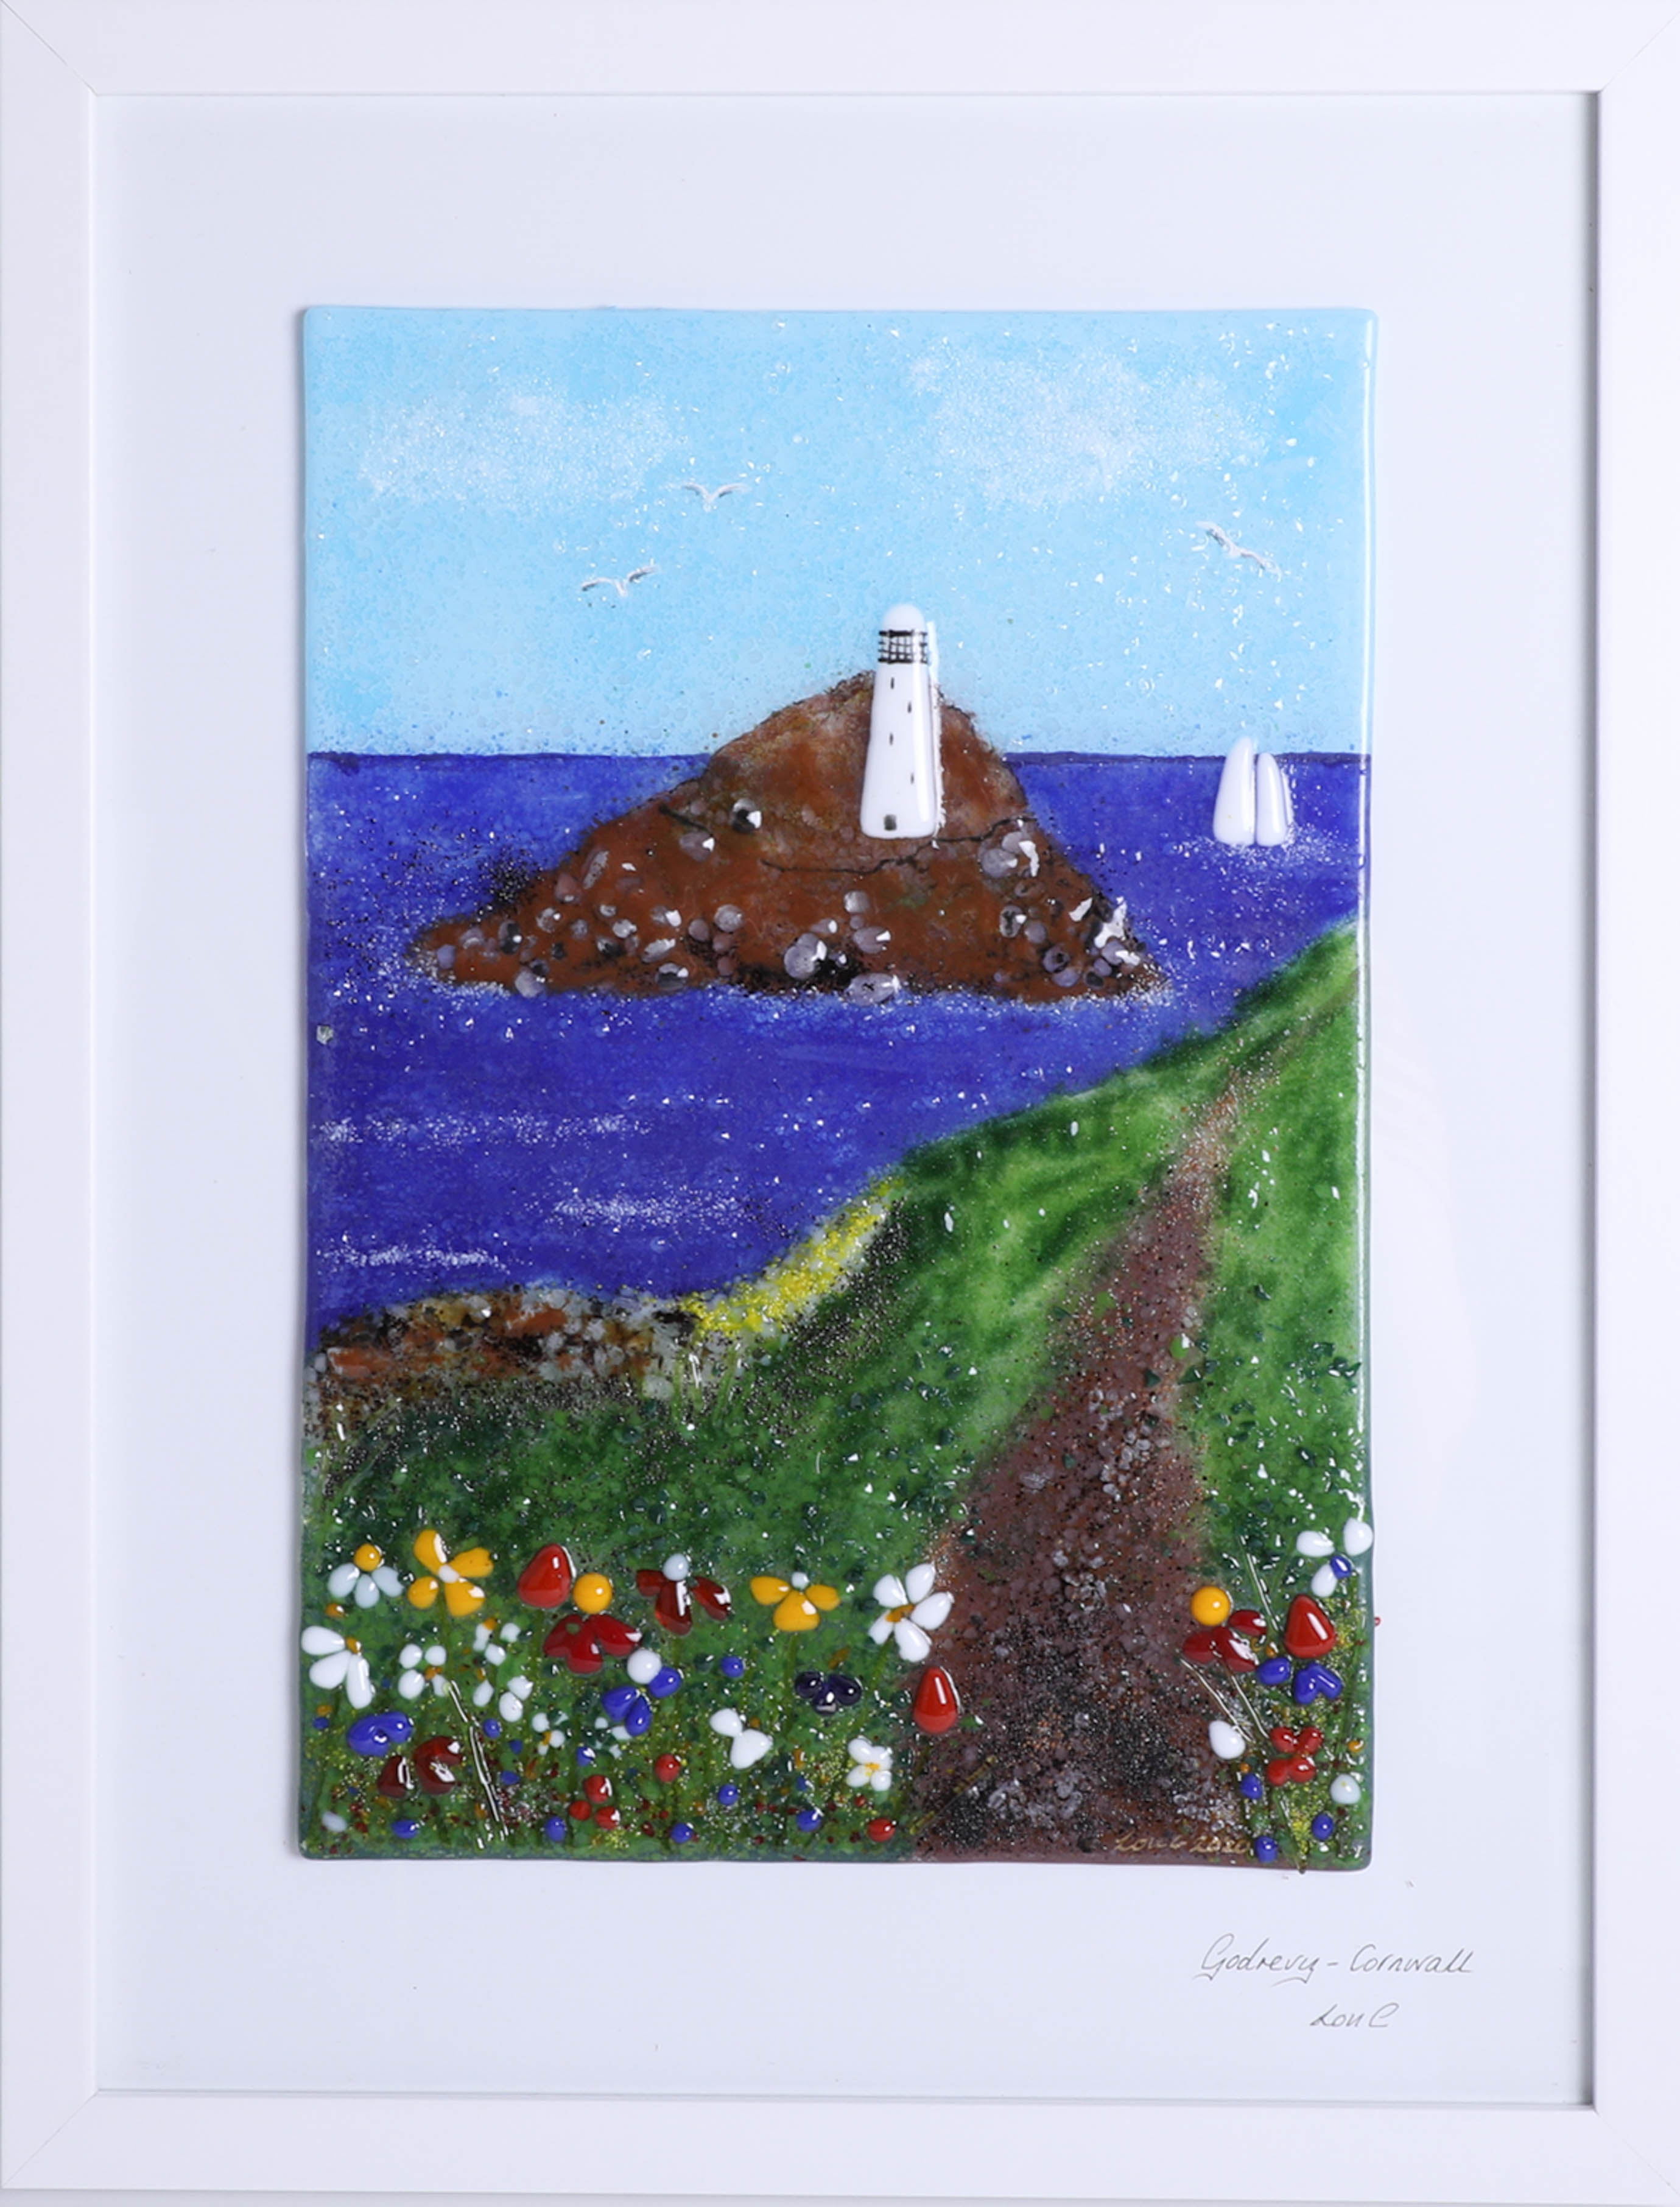 Lot 008 - Lou from Lou C fused glass, original glass work, titled 'Godrevy, Cornwall' 2020, titled and signed.